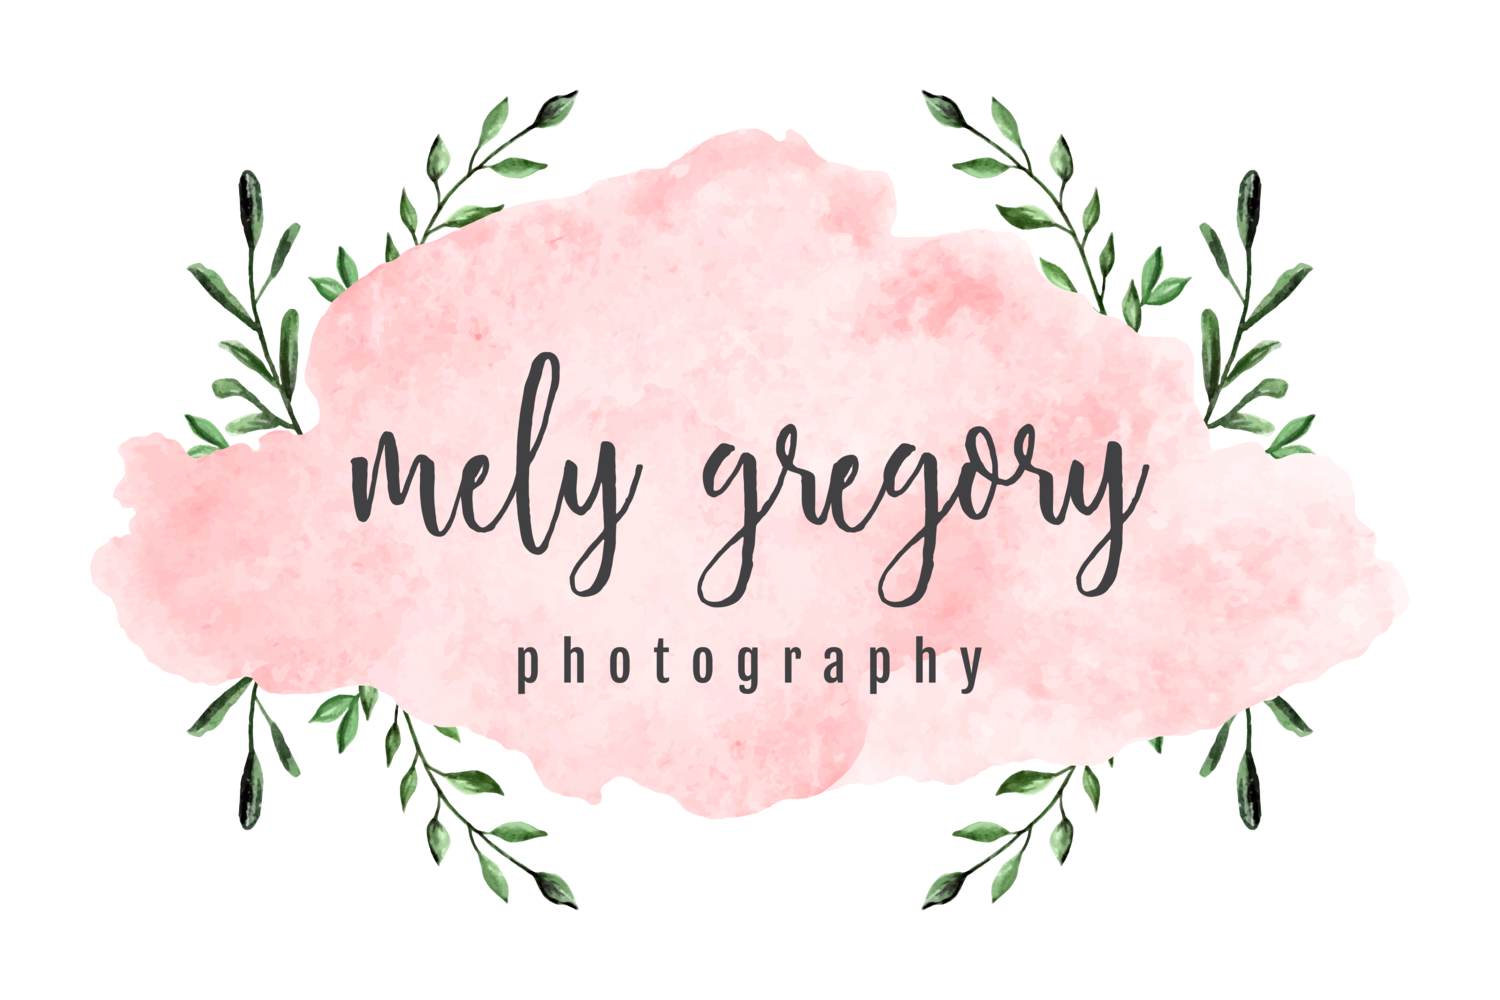 Mely Gregory